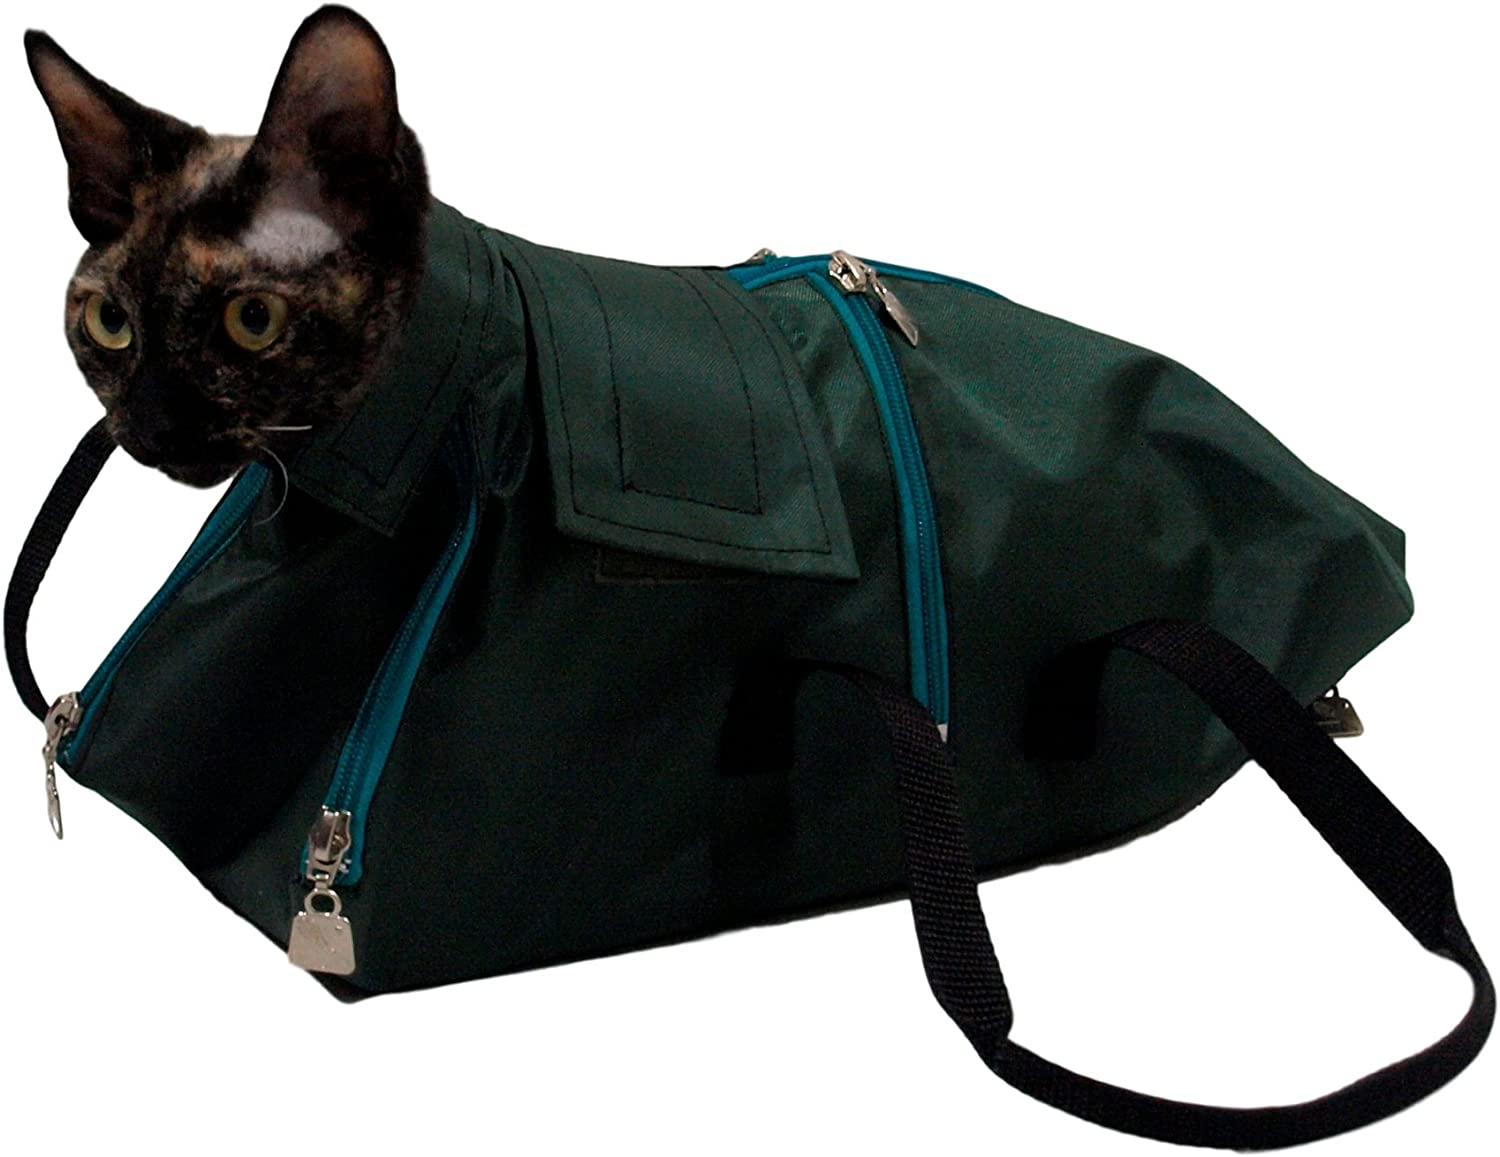 Premium Cat Restraint Bag, Cat Grooming Bag, Cat Carrier Bag. Made in Europe Using The Highest Quality Fabrics. (Medium)